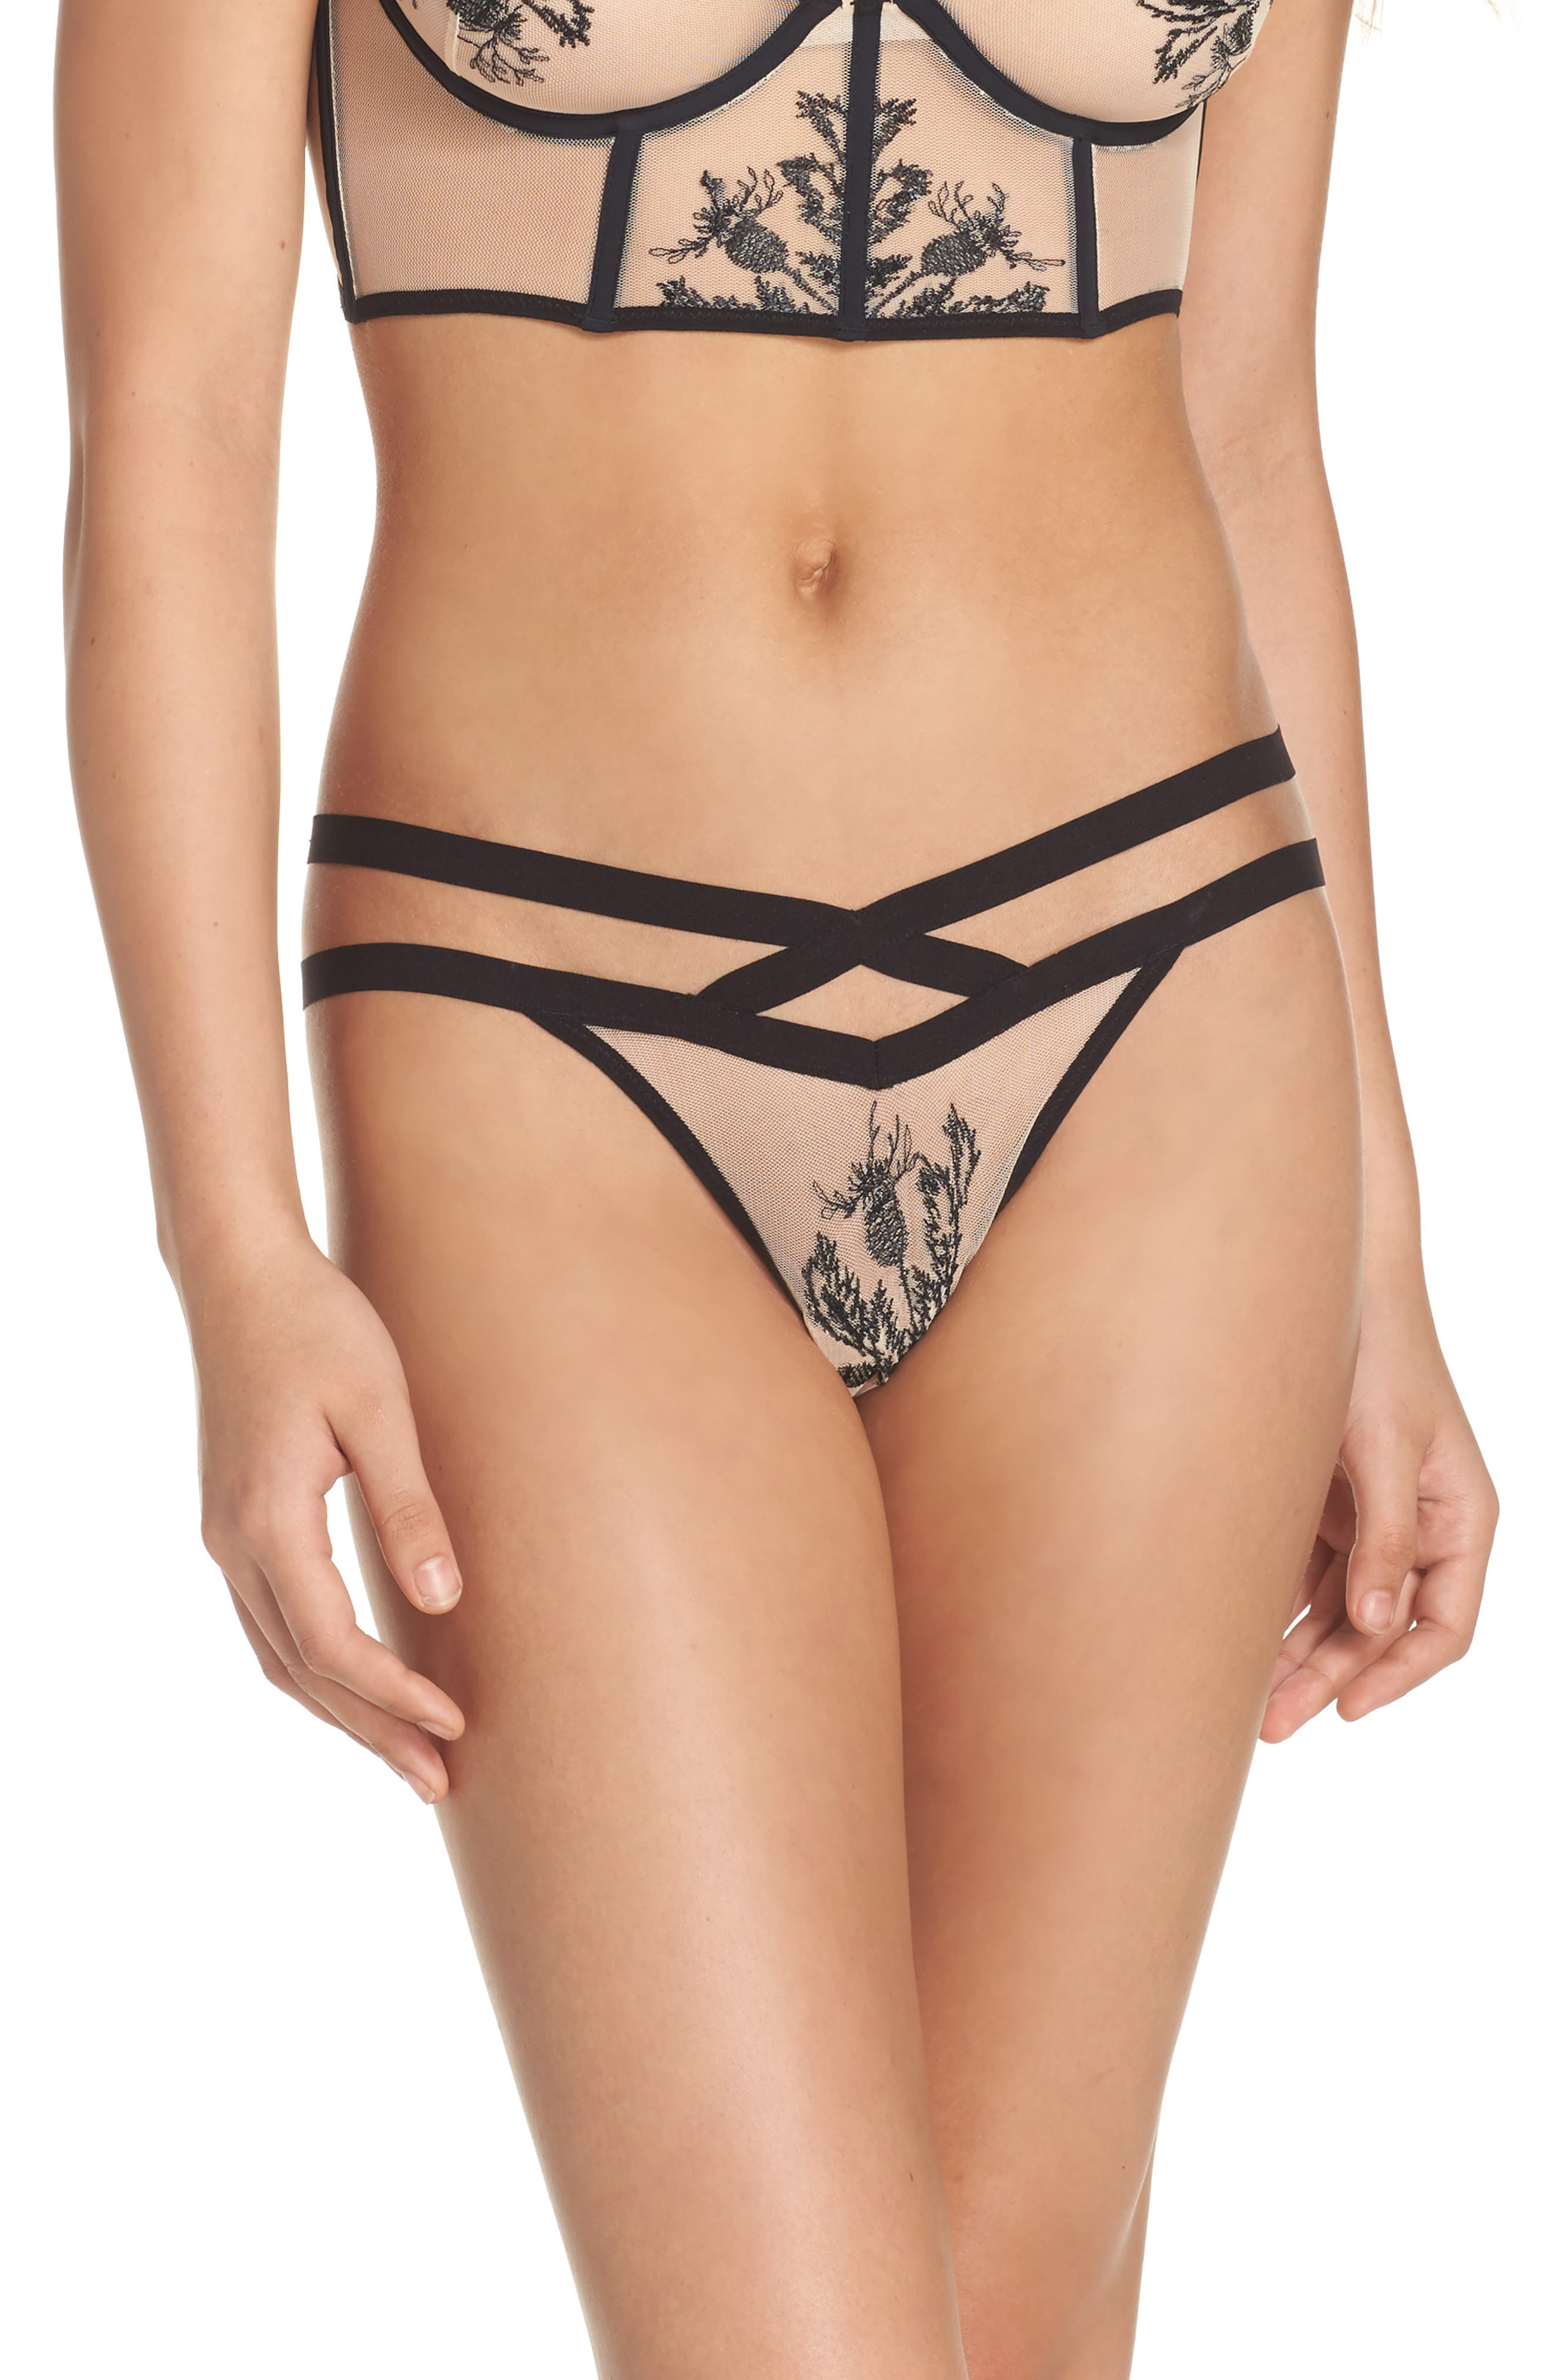 Thistle & Spire Verona Embroidered Mesh Thong